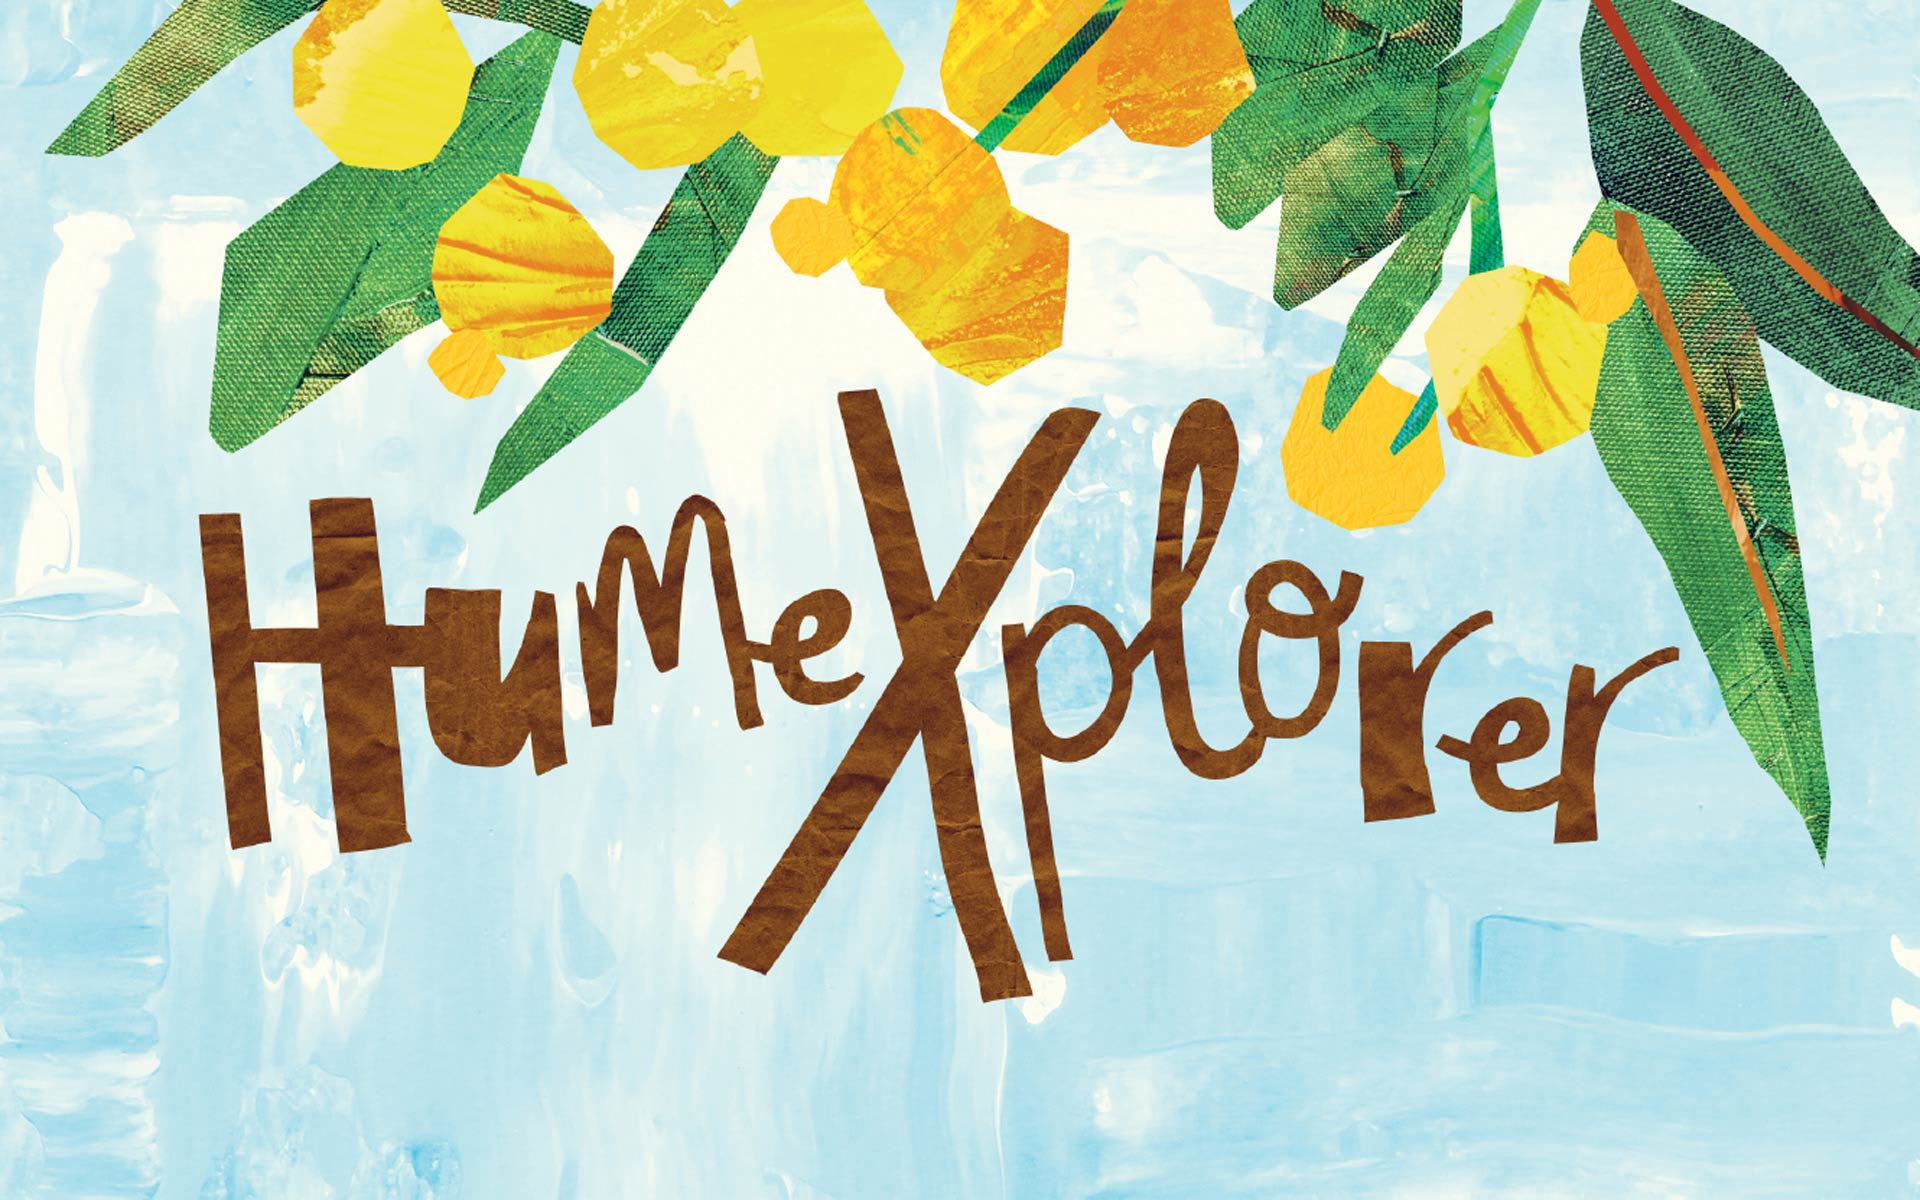 HumeXplorer Illustration and Design